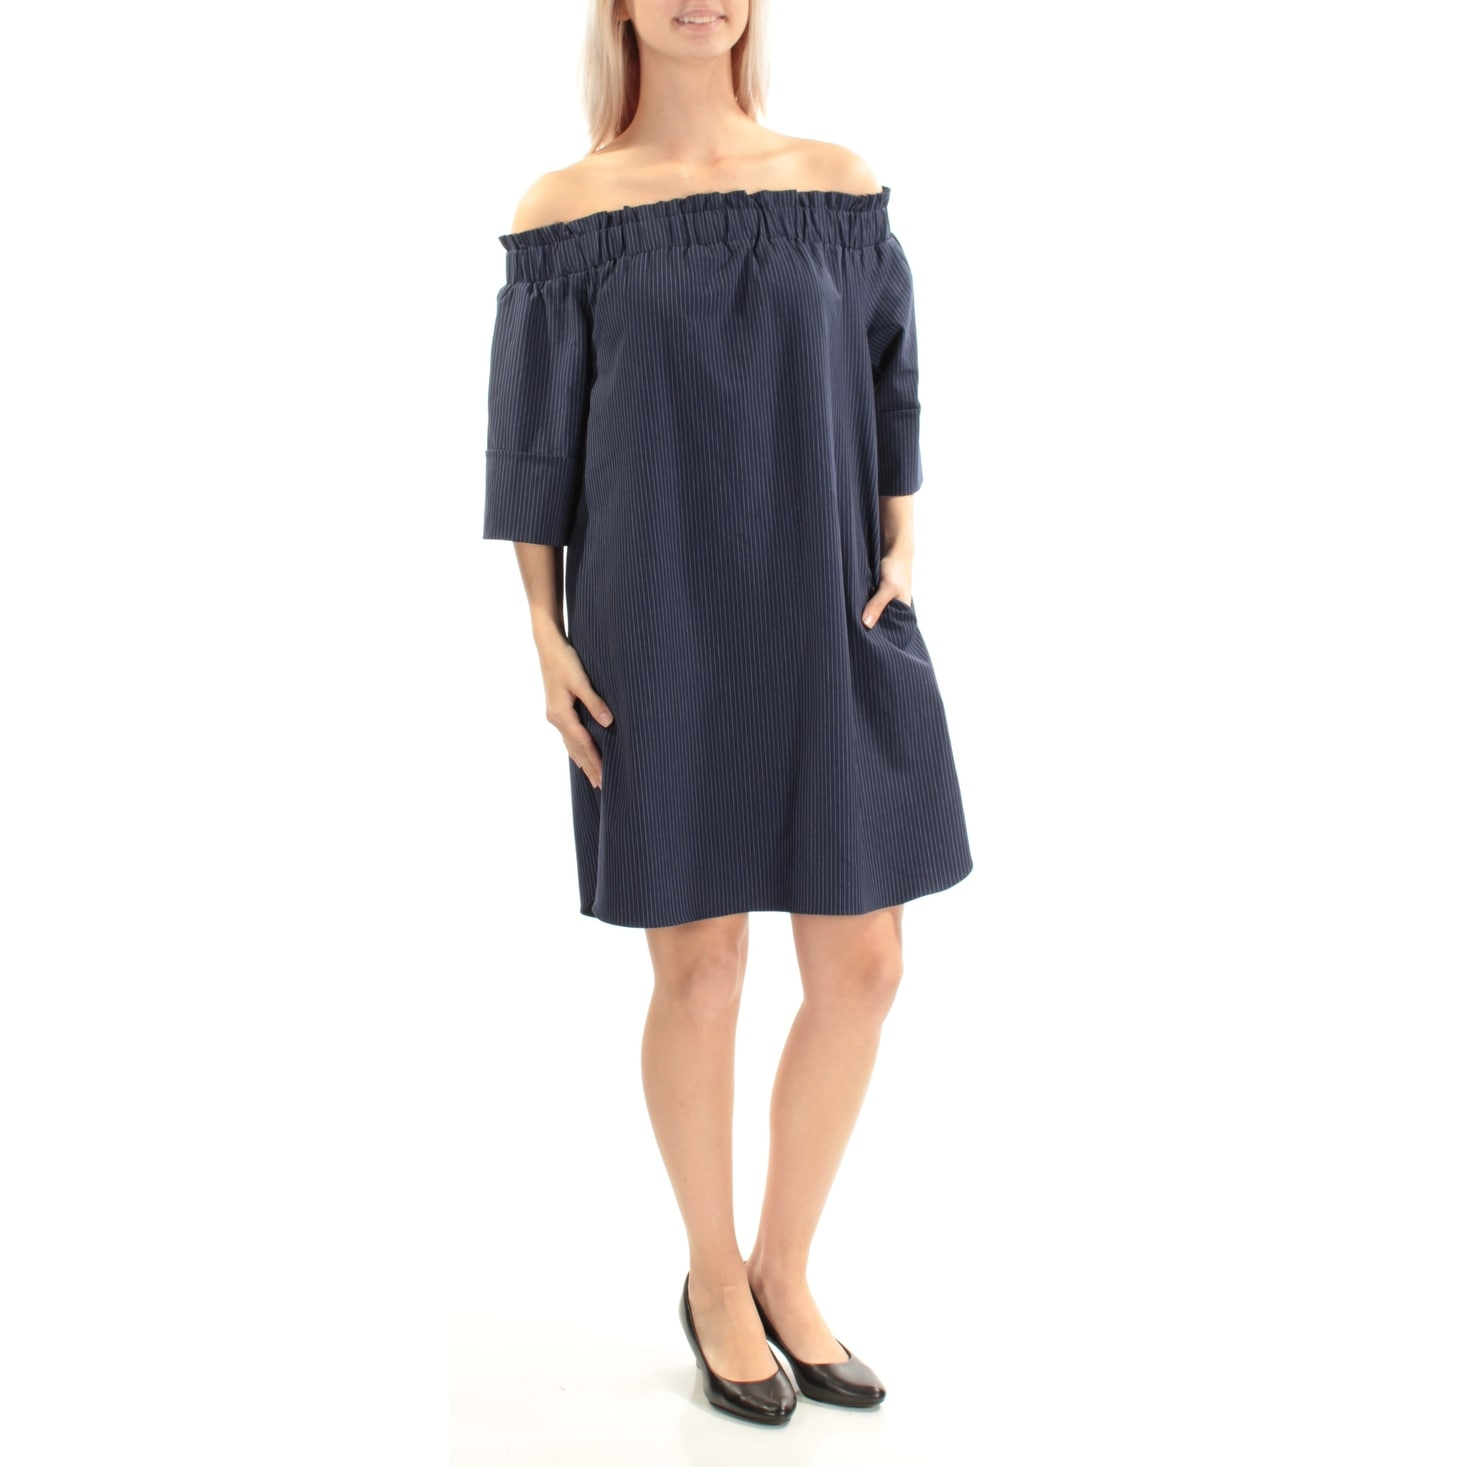 c963250fd8aa Shop RACHEL ROY Womens Navy Ruffled Pinstripe Short Sleeve Off Shoulder  Above The Knee Shift Dress Size  S - Free Shipping On Orders Over  45 -  Overstock - ...